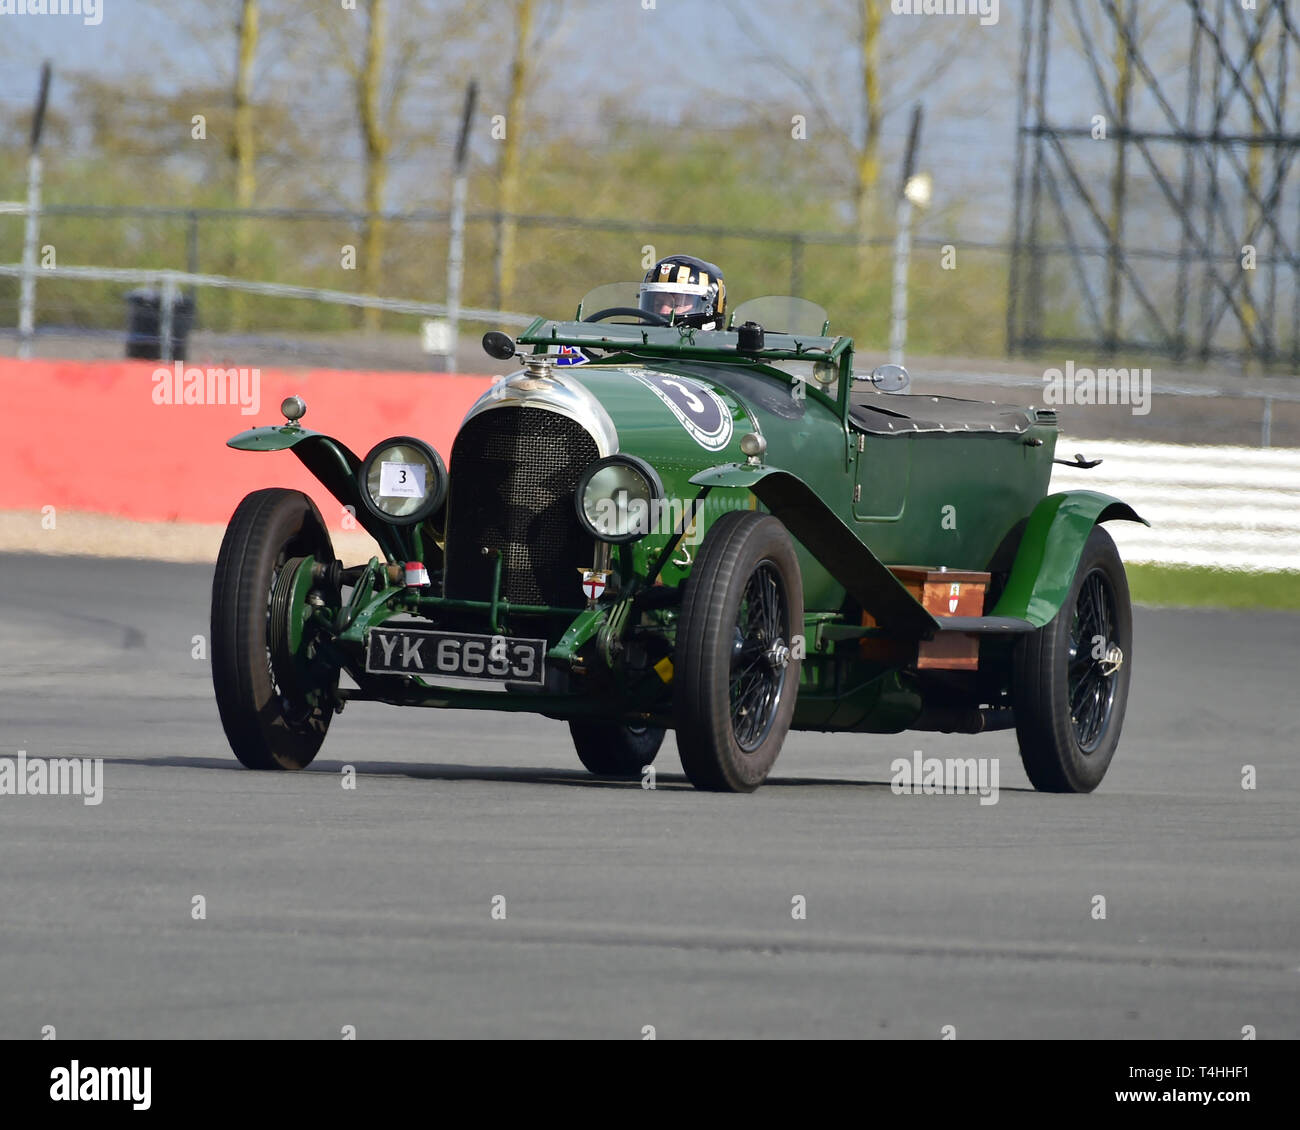 Philip Strickland, Bentley 3 Litre Long Chassis, Benjafield 100, 100 Years of Bentley, April 2019,  Silverstone, Northamptonshire, England, circuit ra - Stock Image